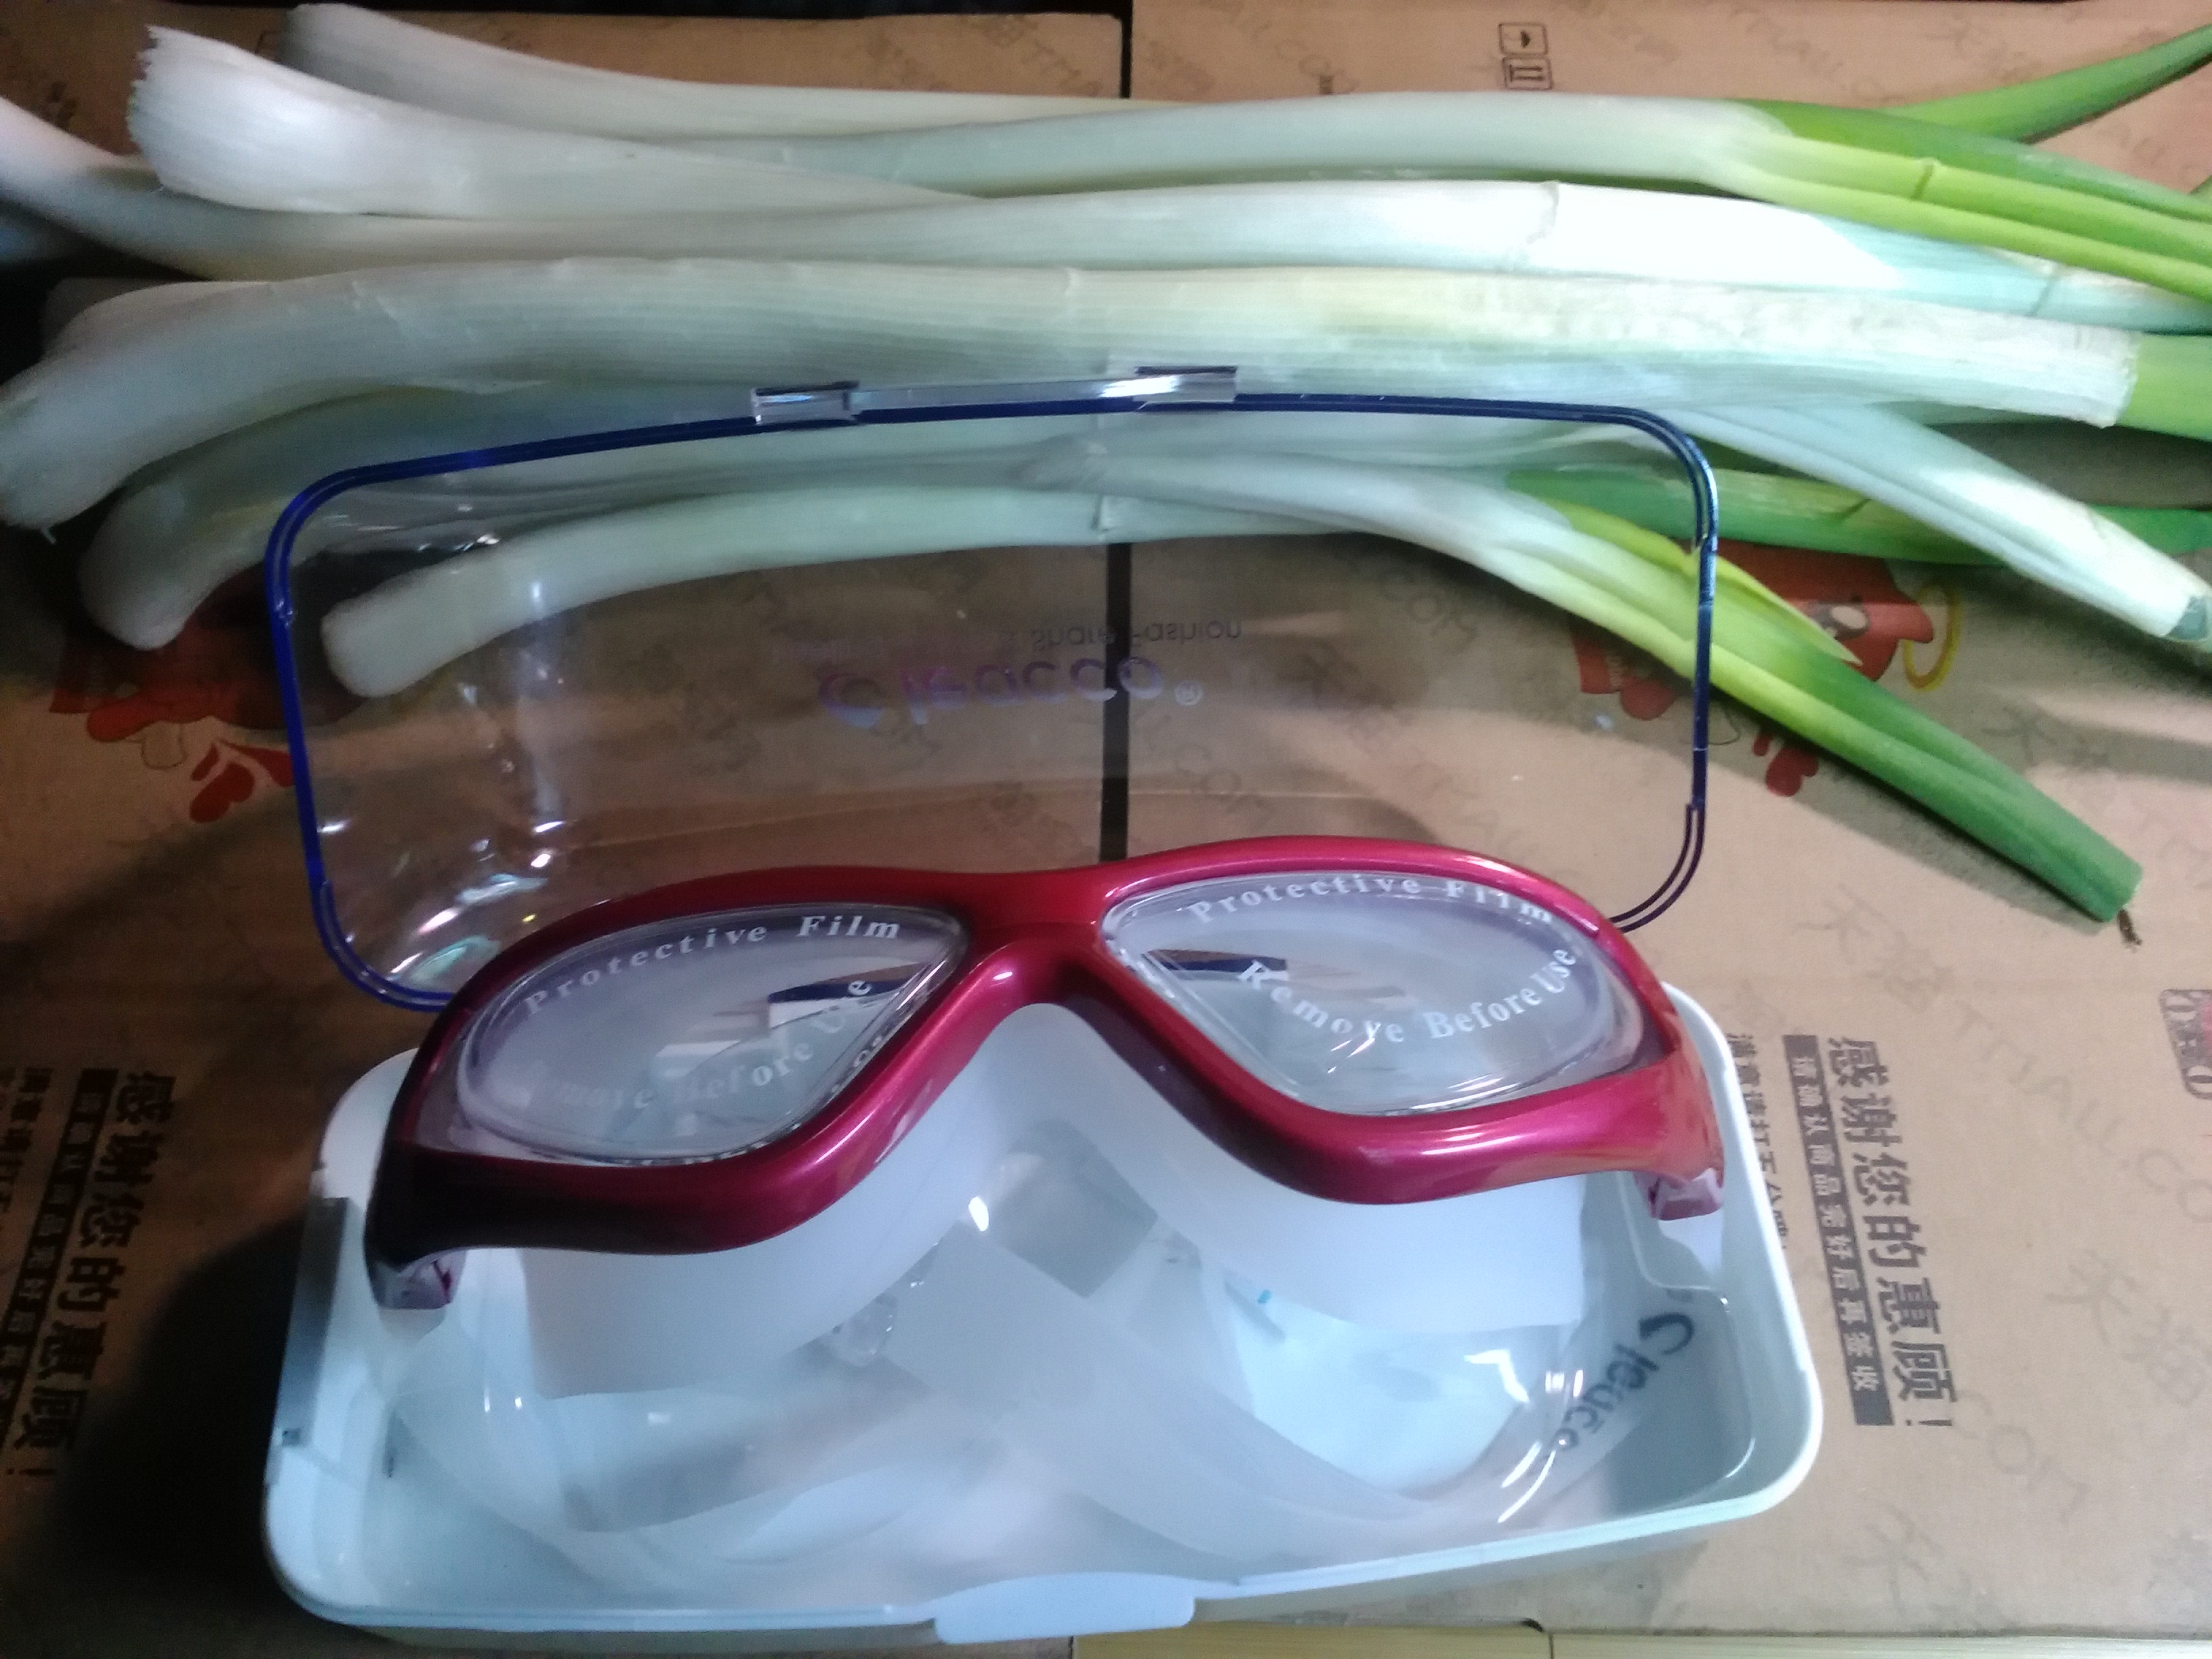 (5 years) Cut onions, cut onions, pepper-proof, tear-proof spectacles, fog-proof, Fully Sealed